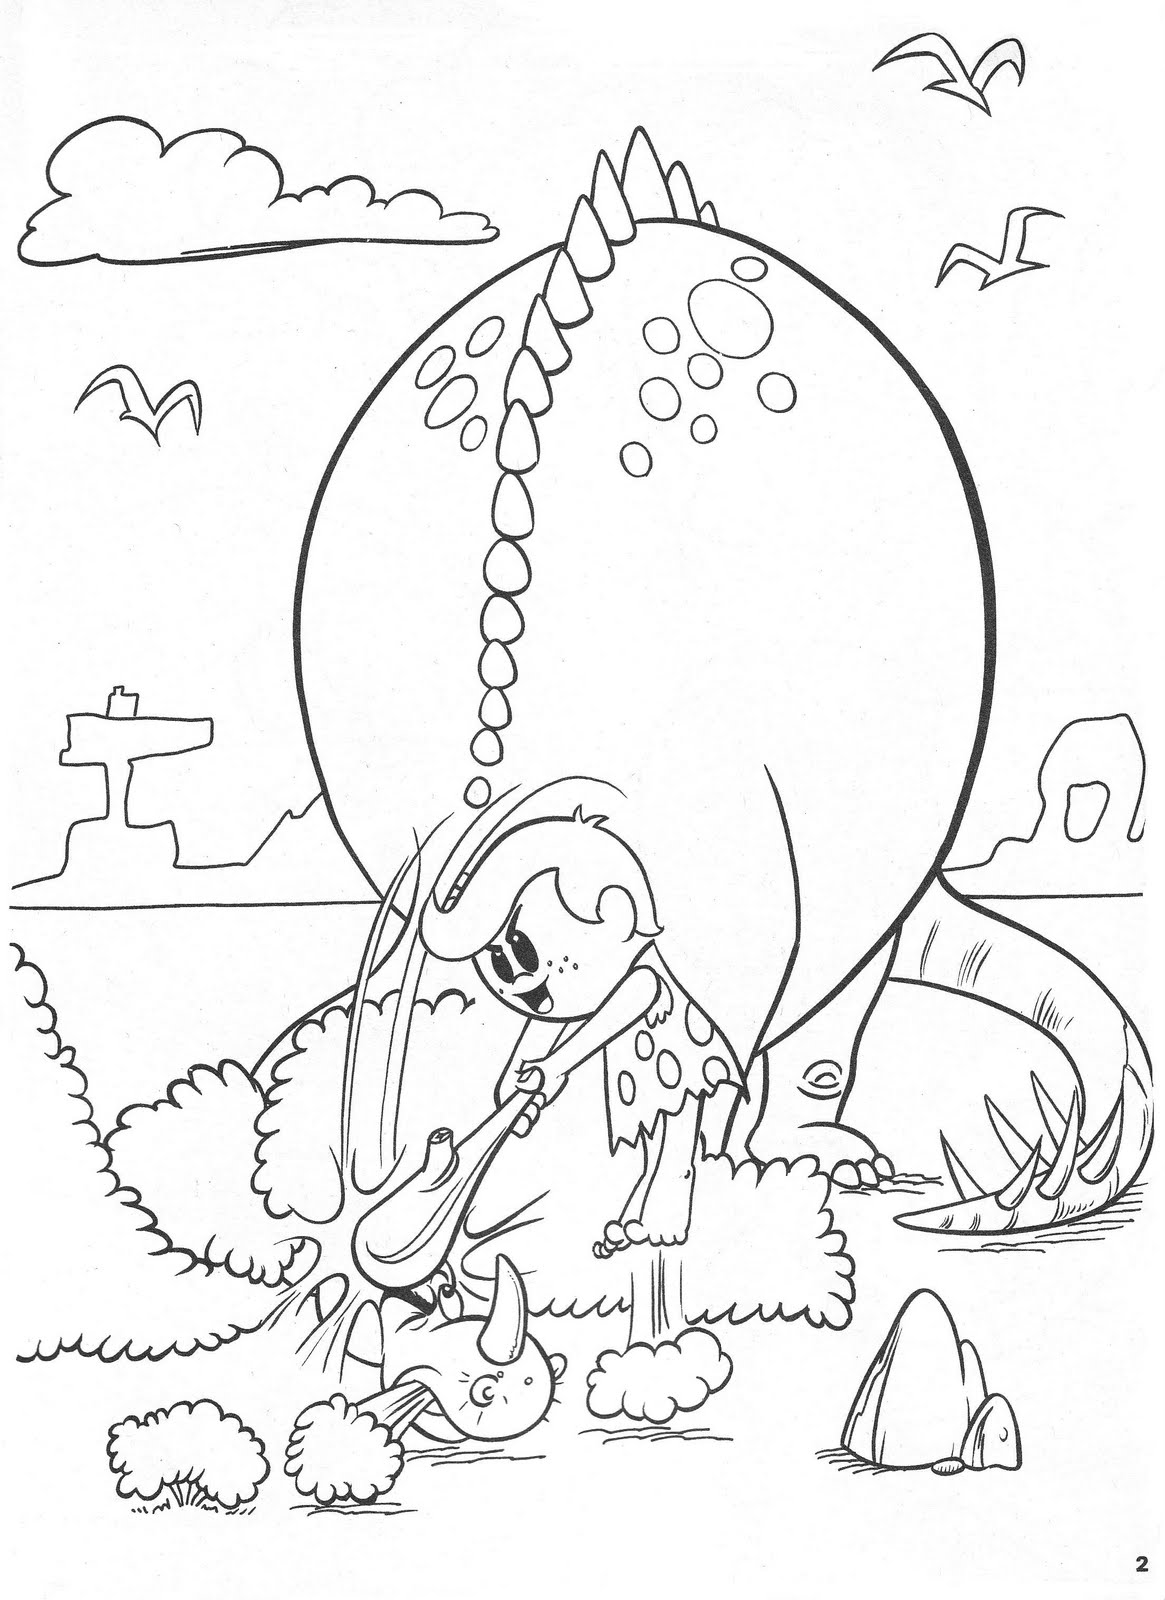 Free tabernacle furnishings coloring pages